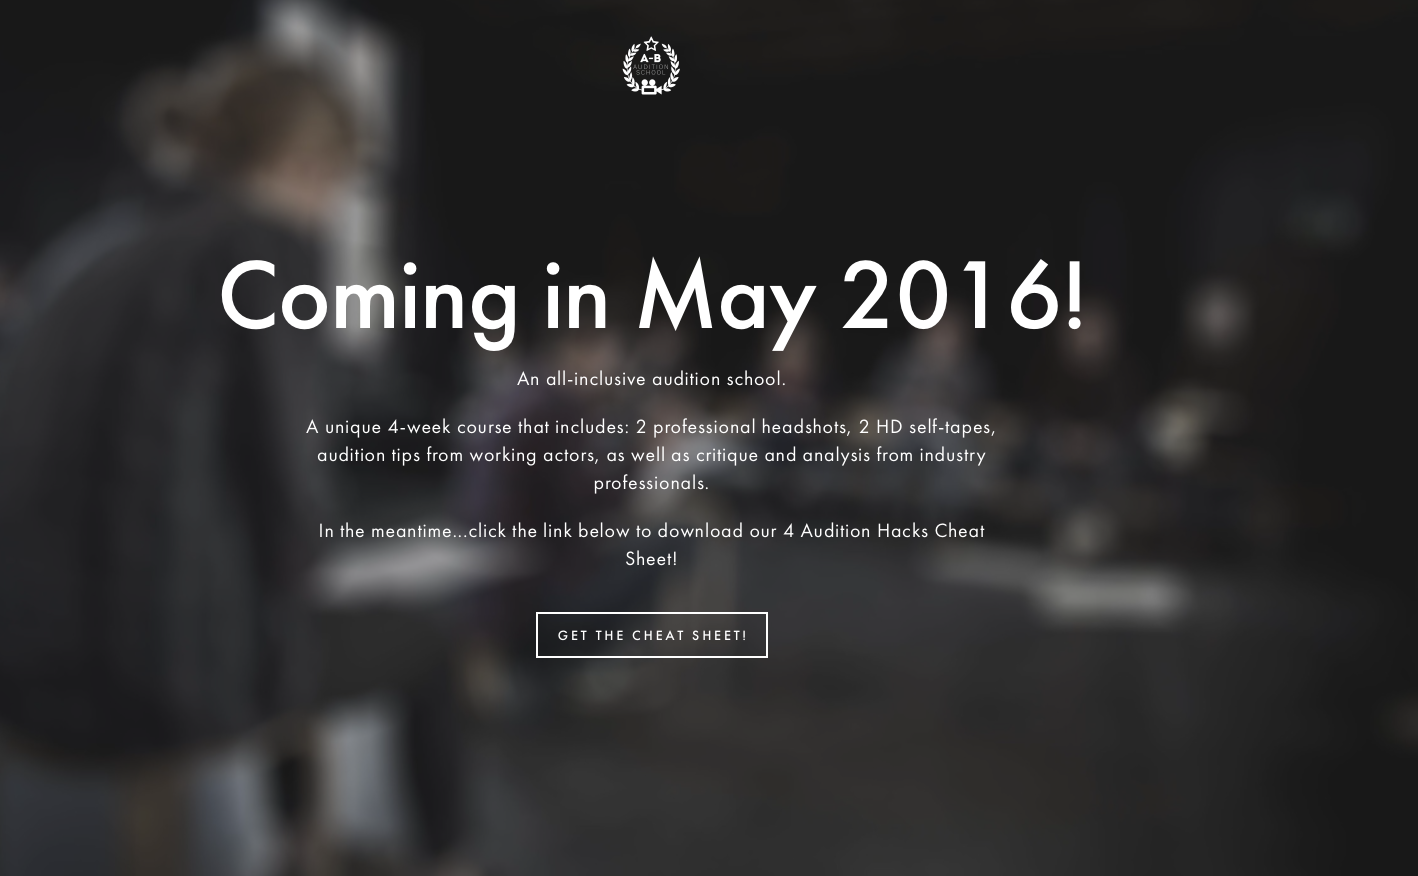 Landing Page - Audition School